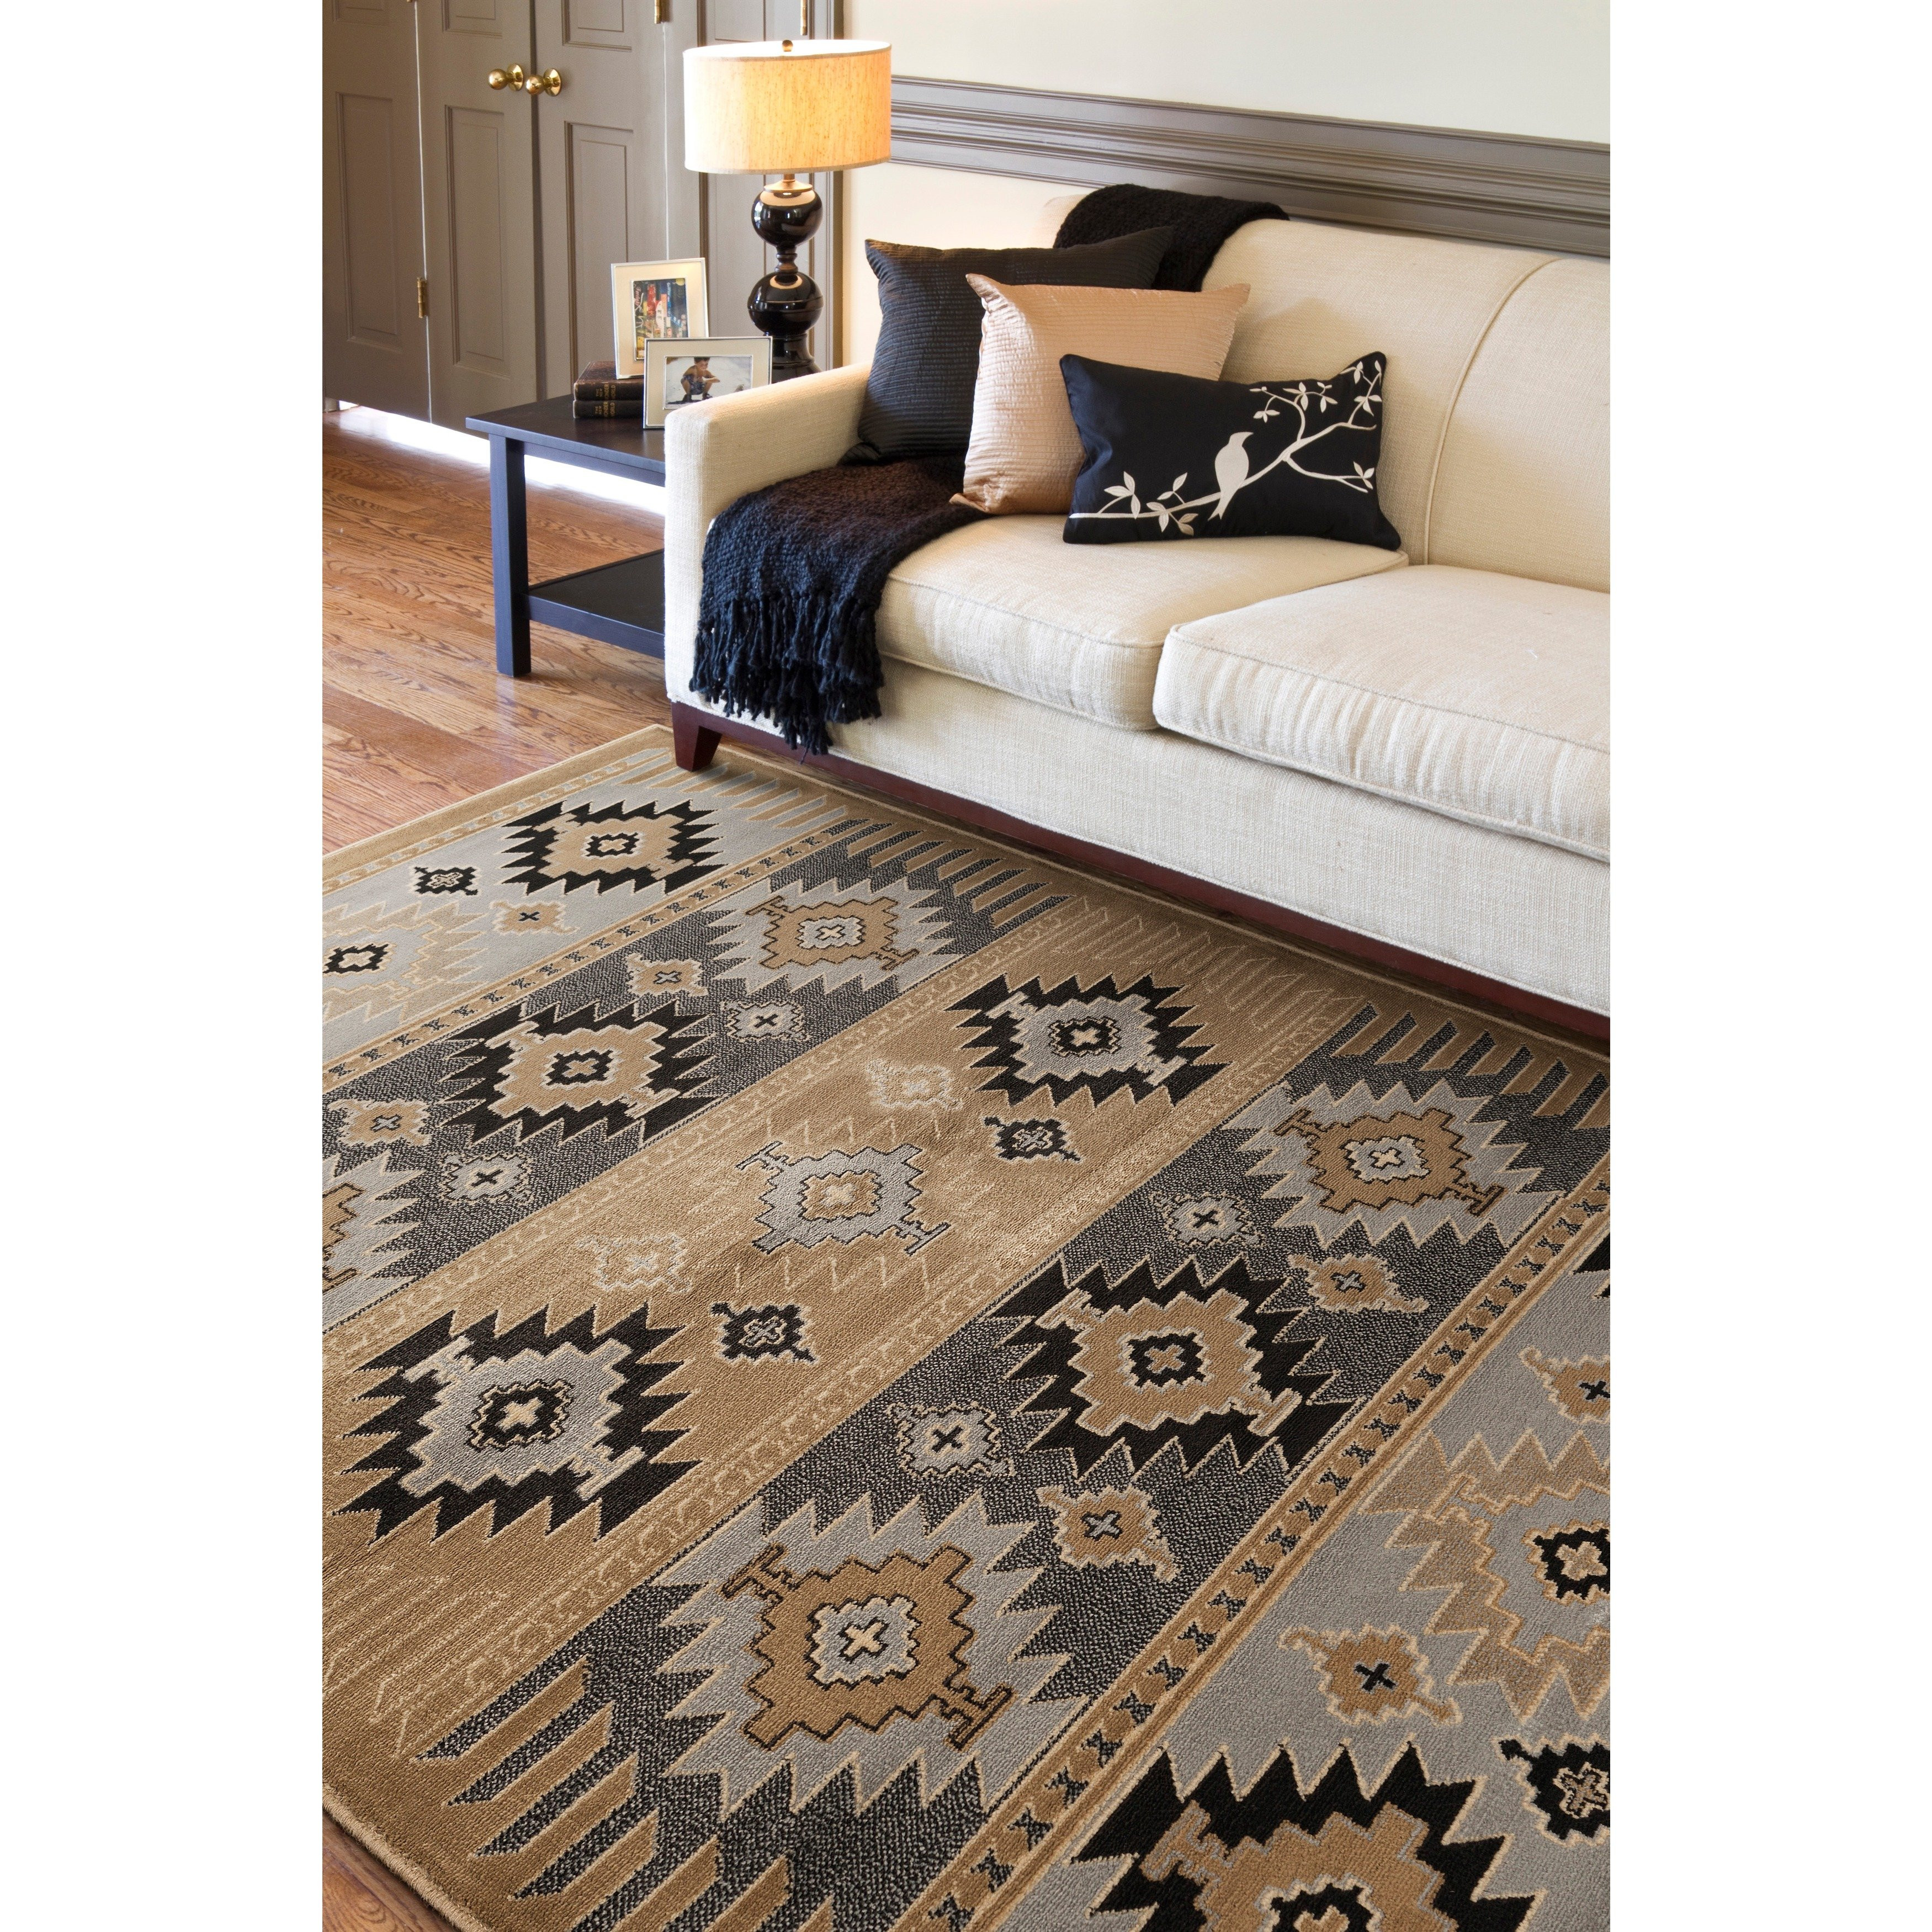 gray brown hardwood flooring of shop southwestern nomad aztec wheat area rug 79 x 112 on sale with shop southwestern nomad aztec wheat area rug 79 x 112 on sale free shipping today overstock com 7714329